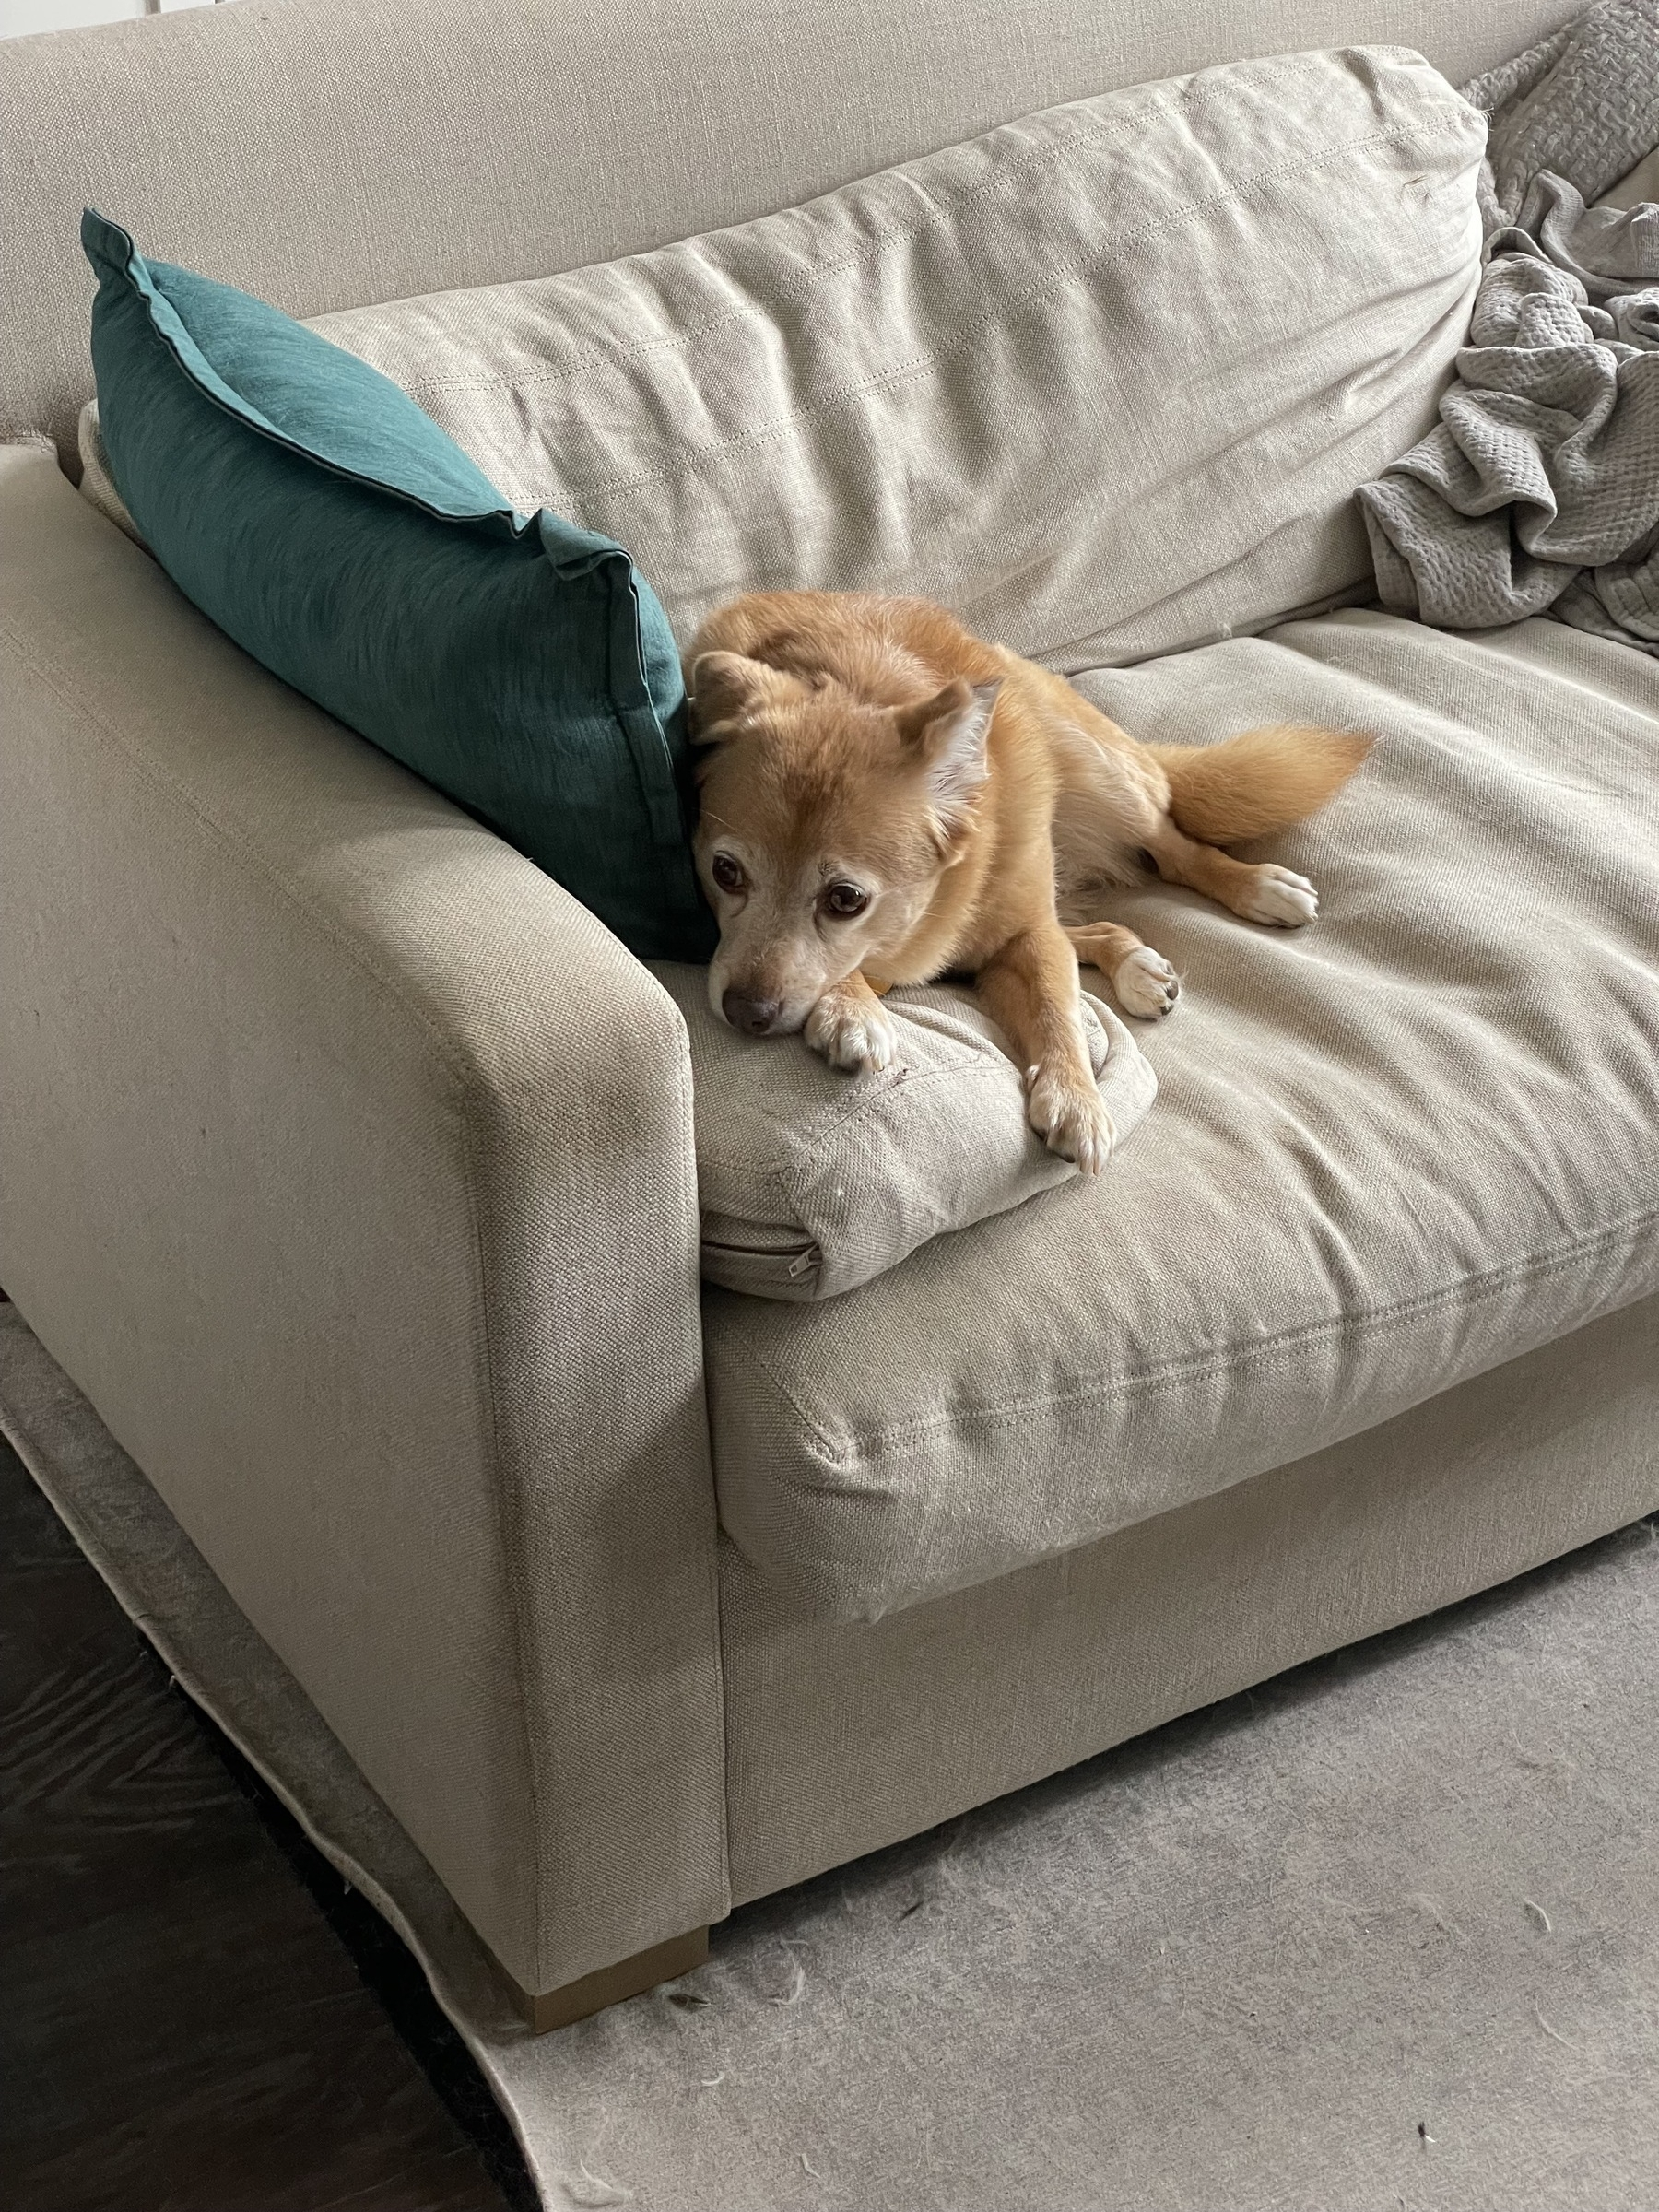 Gracie looking sad on the couch